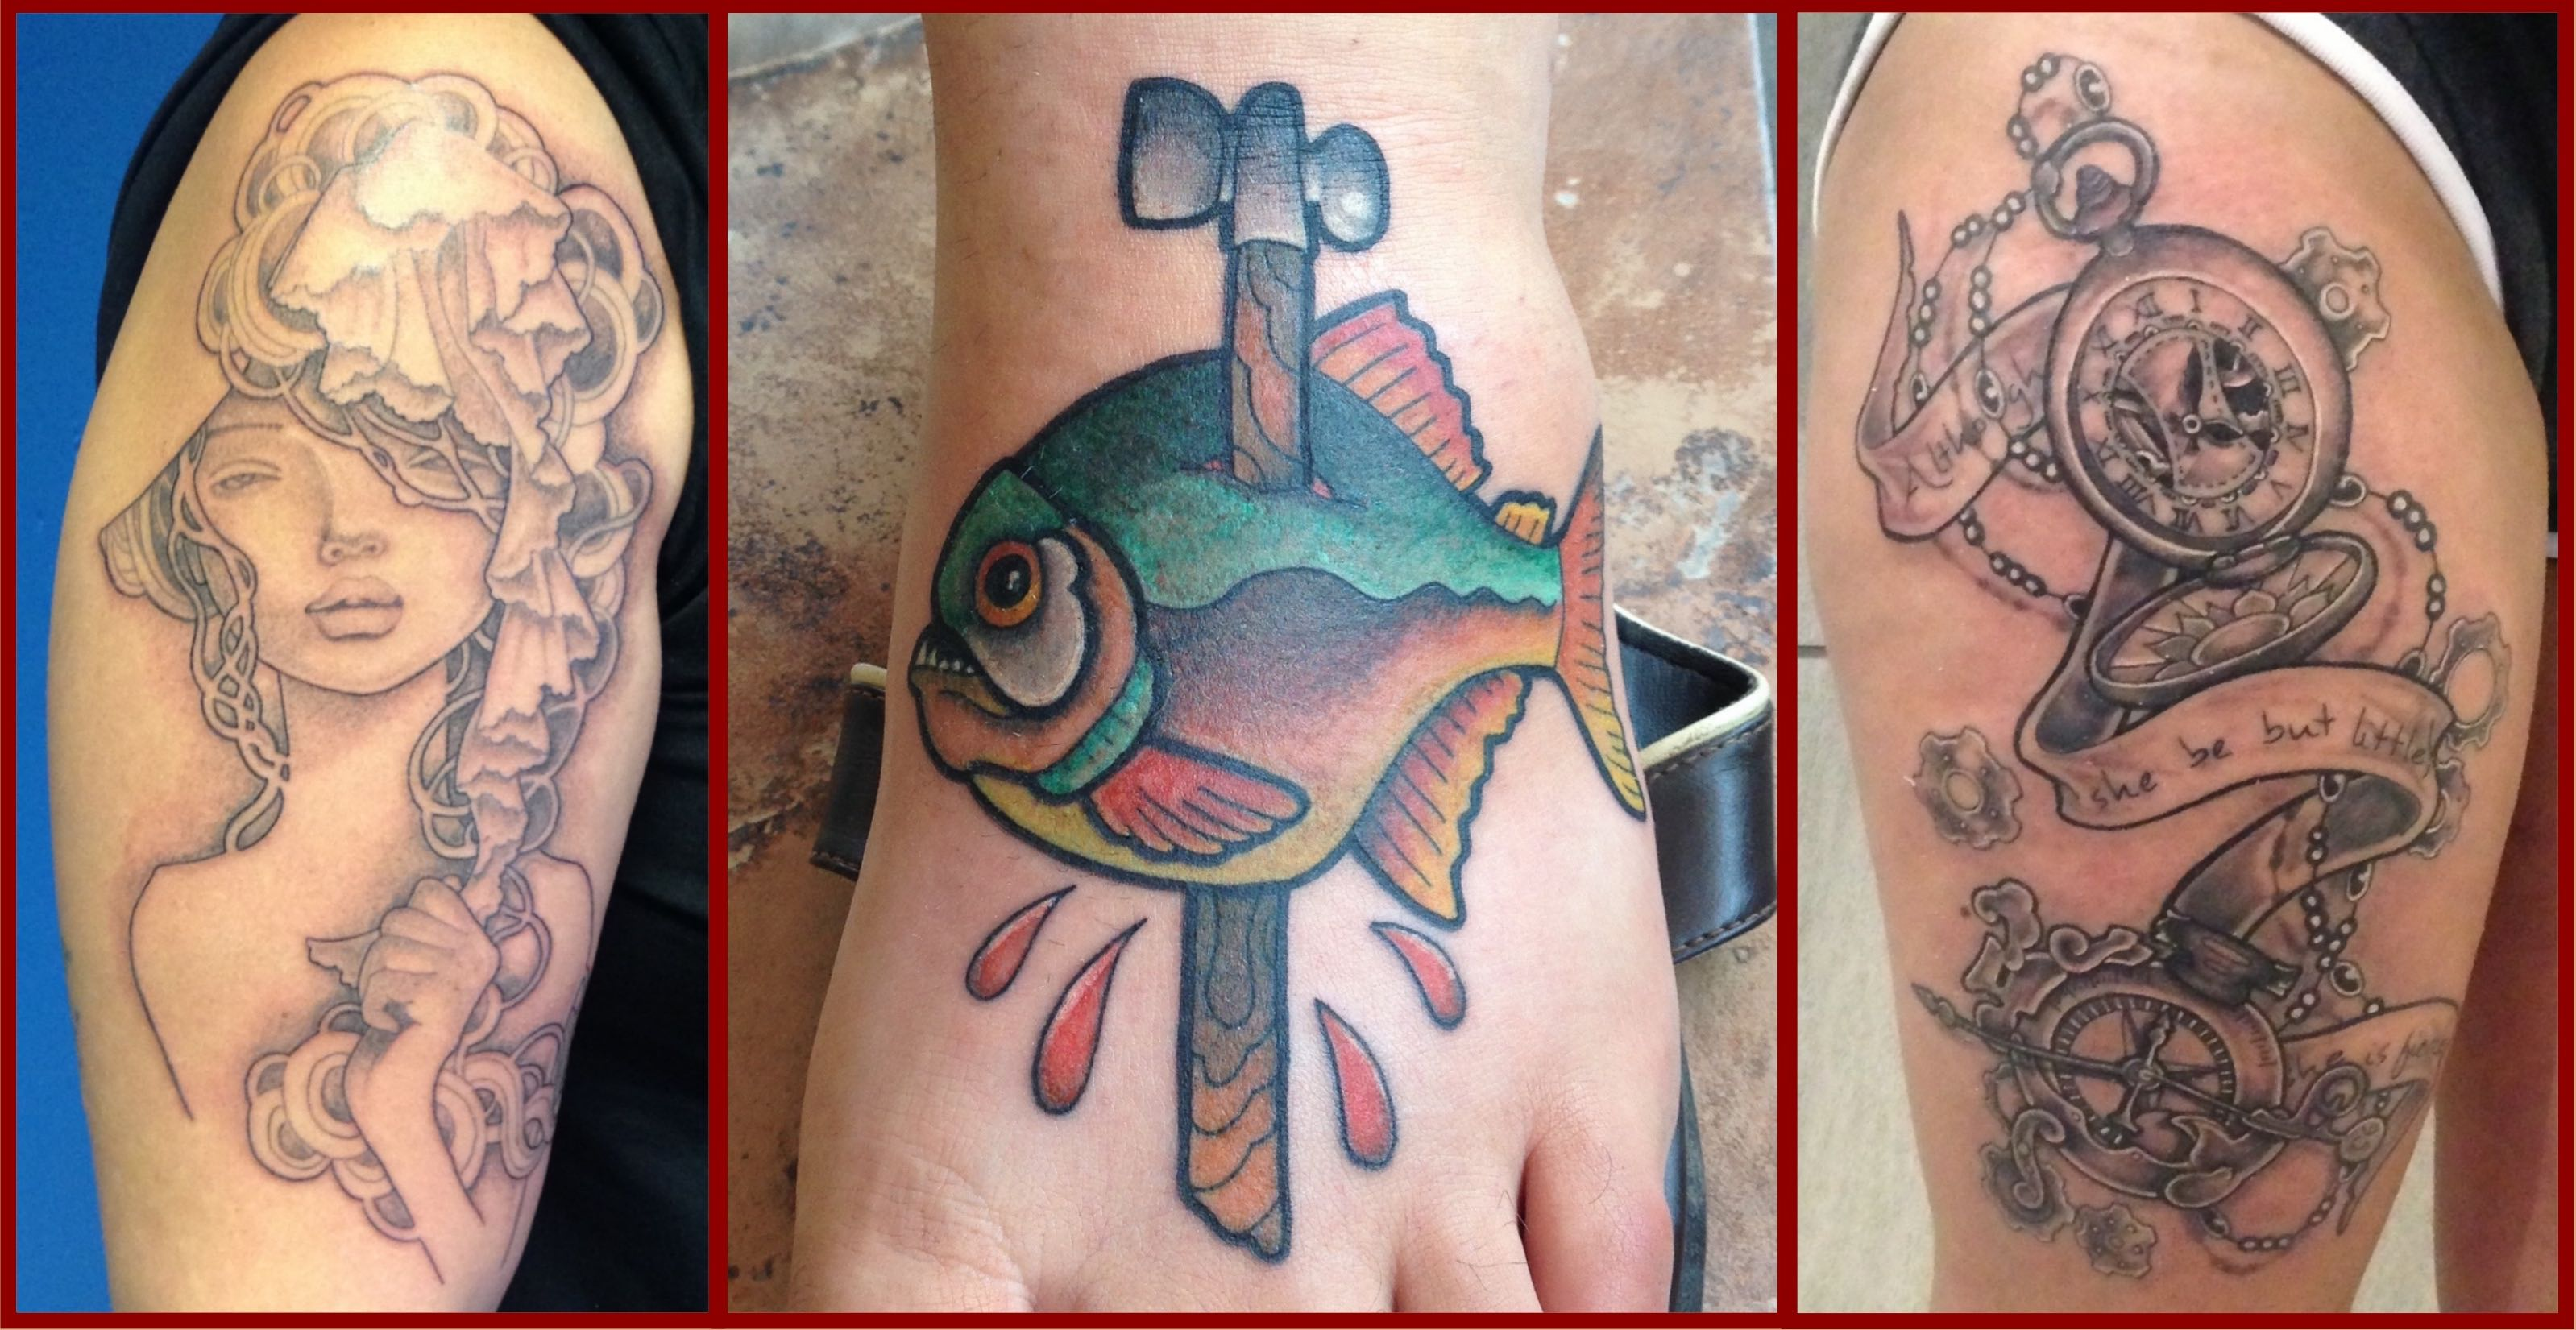 A selection of tattoos done by our Tattoo Artist of the Week, Alastair Magee